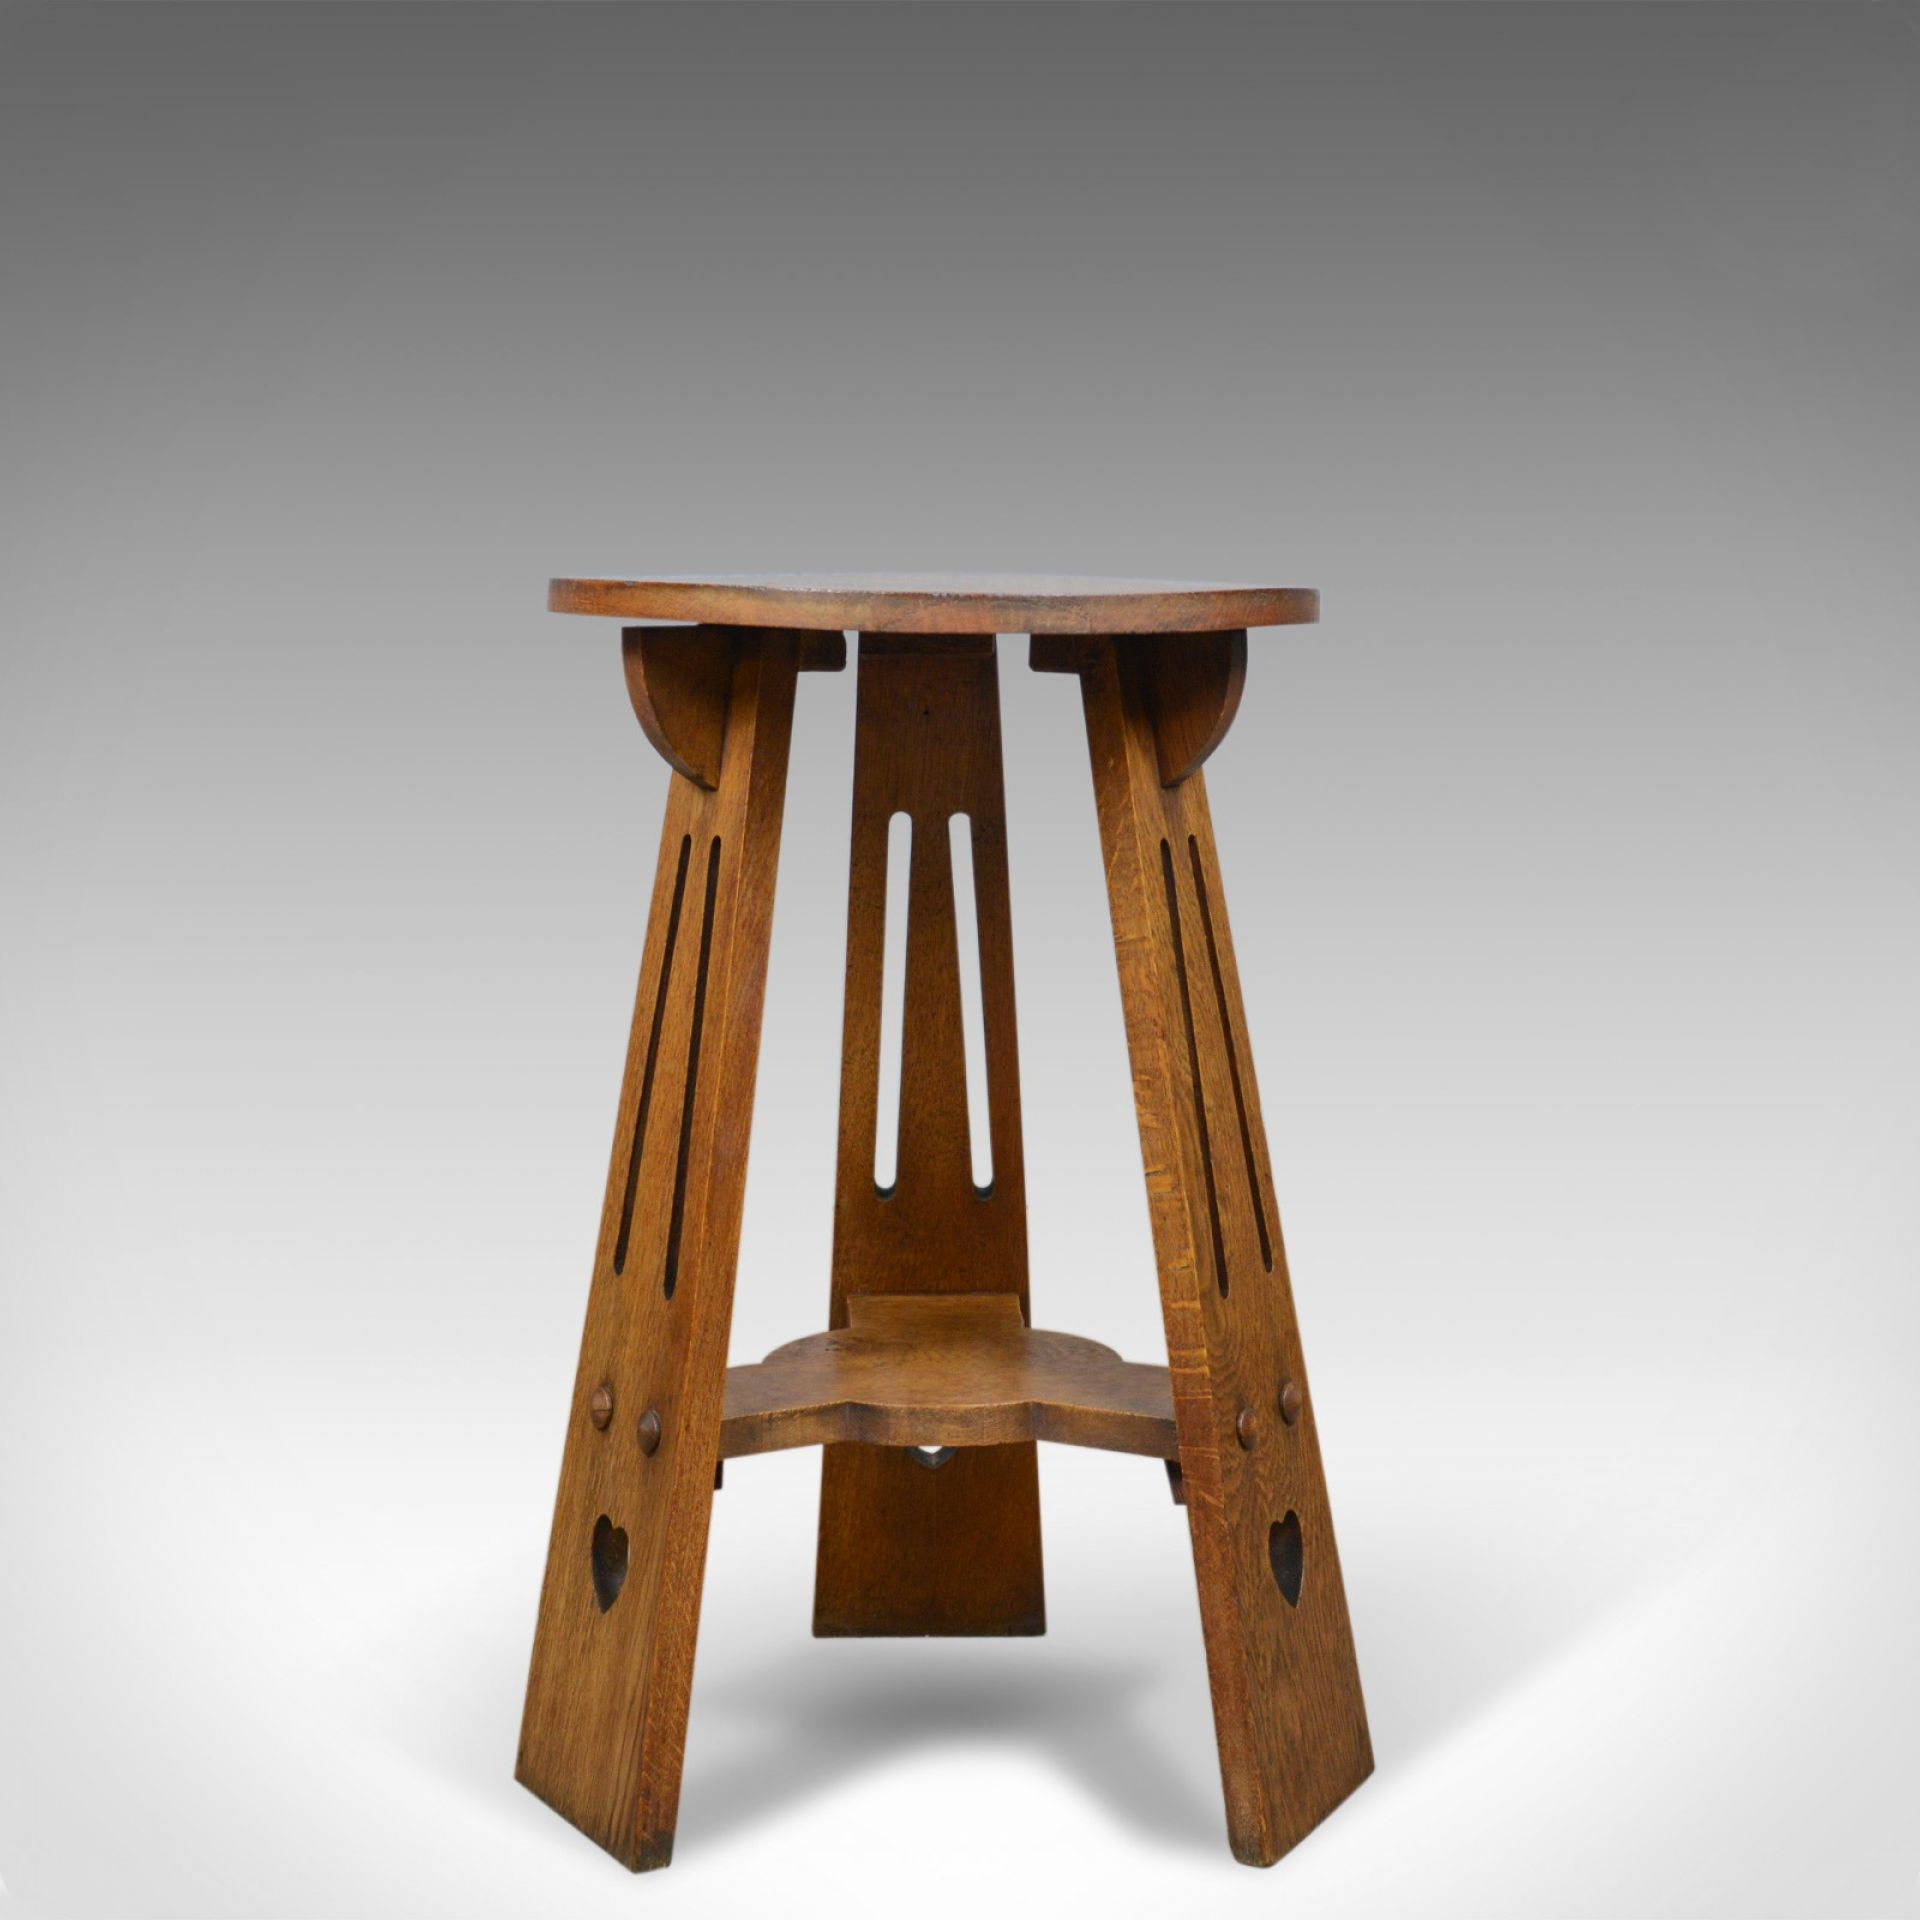 Arts and Crafts Side Table, English, Antique, Liberty-Esque, Oak, Tripod  c.1900